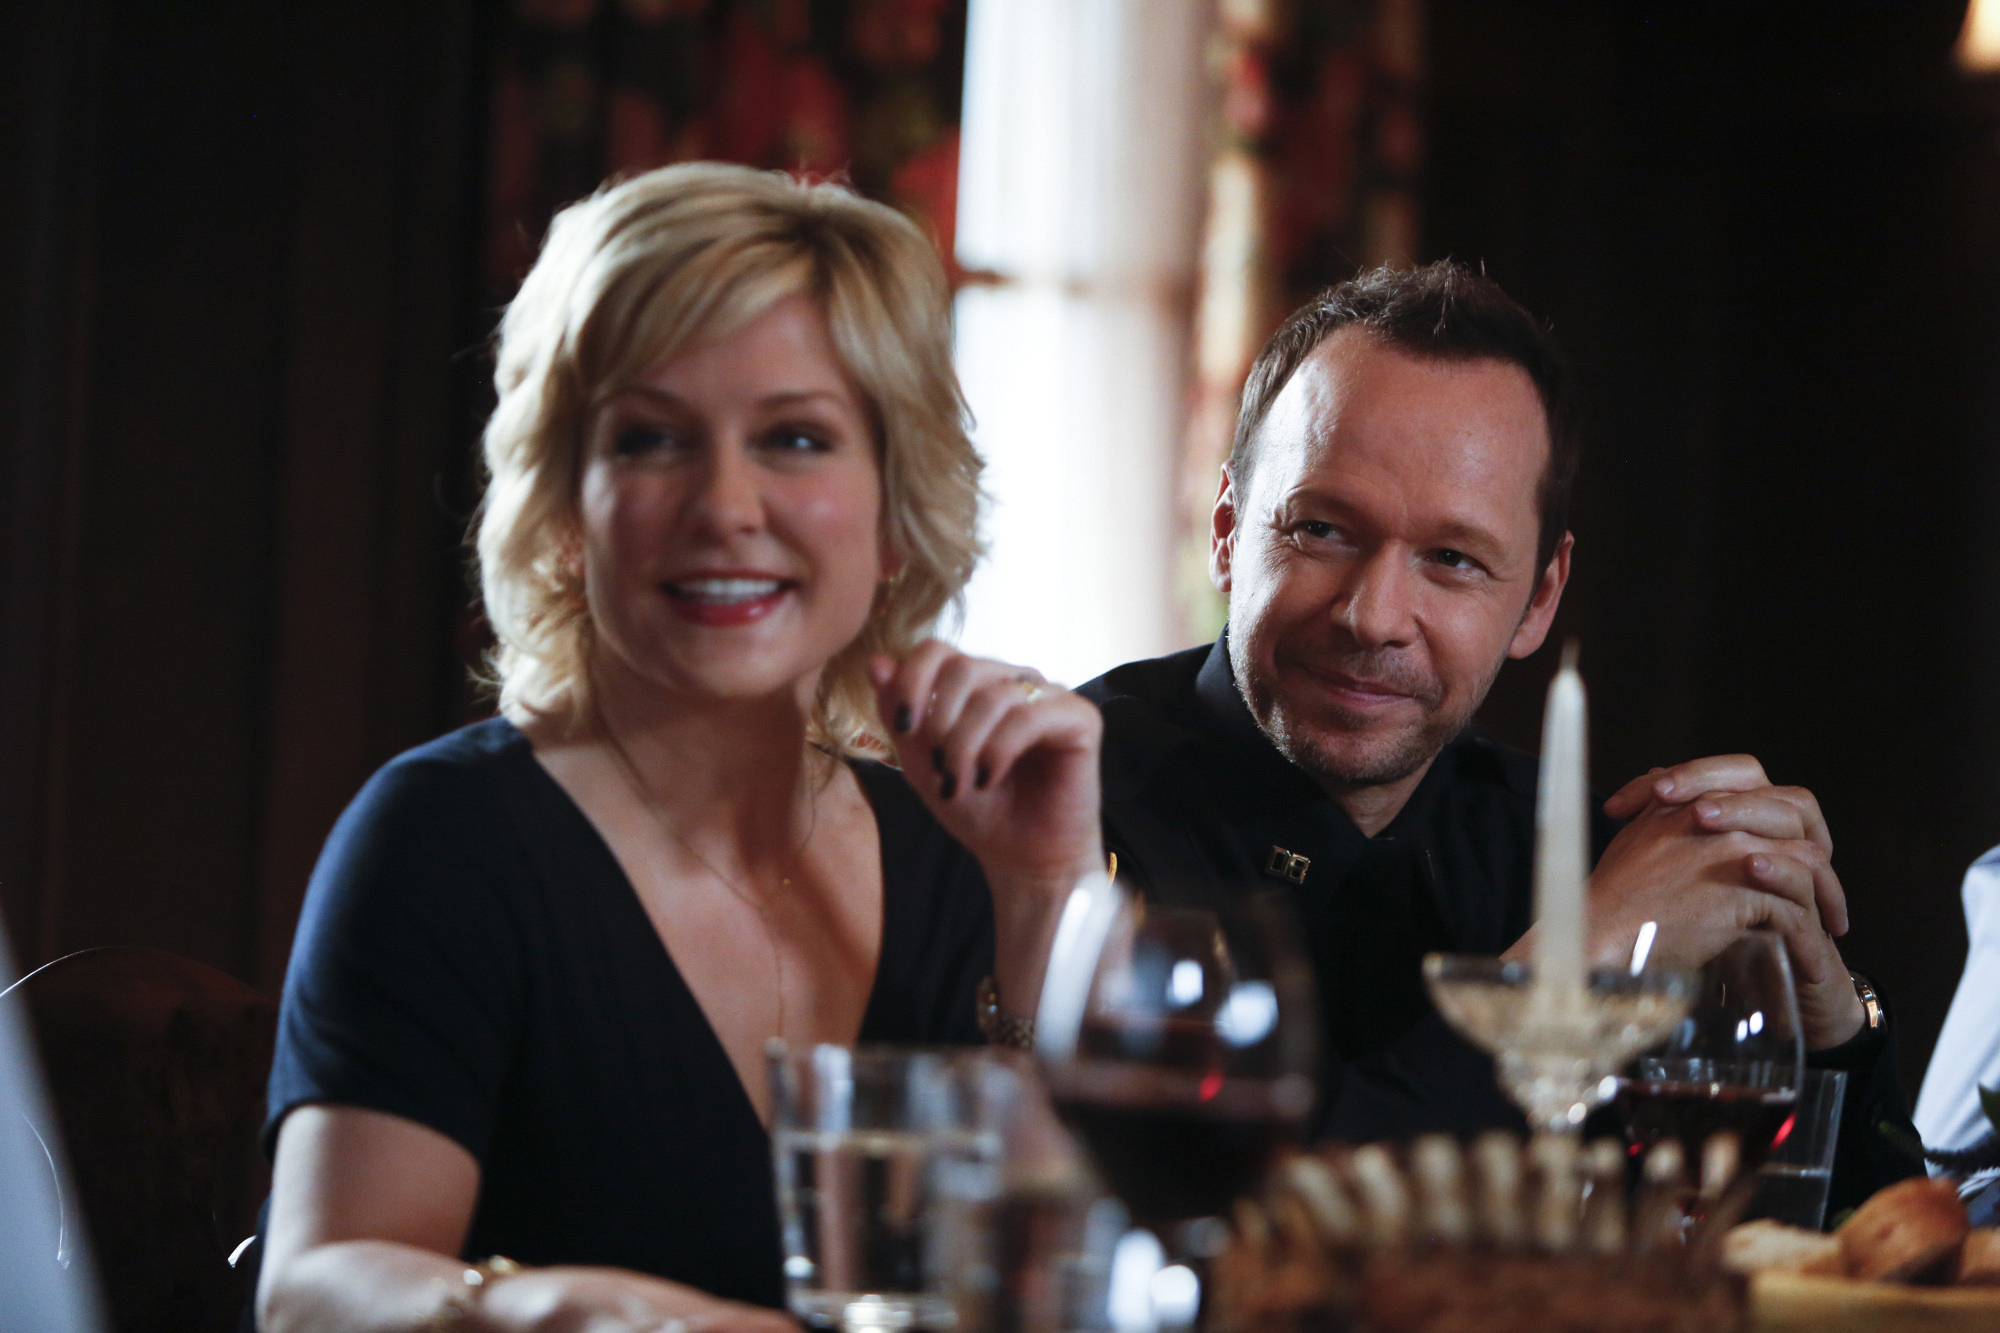 """13. Before joining Blue Bloods, Amy Carlson was known for her roles as Alex Taylor in """"Third Watch"""" and A.D.A. Kelly   Gaffney in """"Law & Order: Trial by Jury."""""""